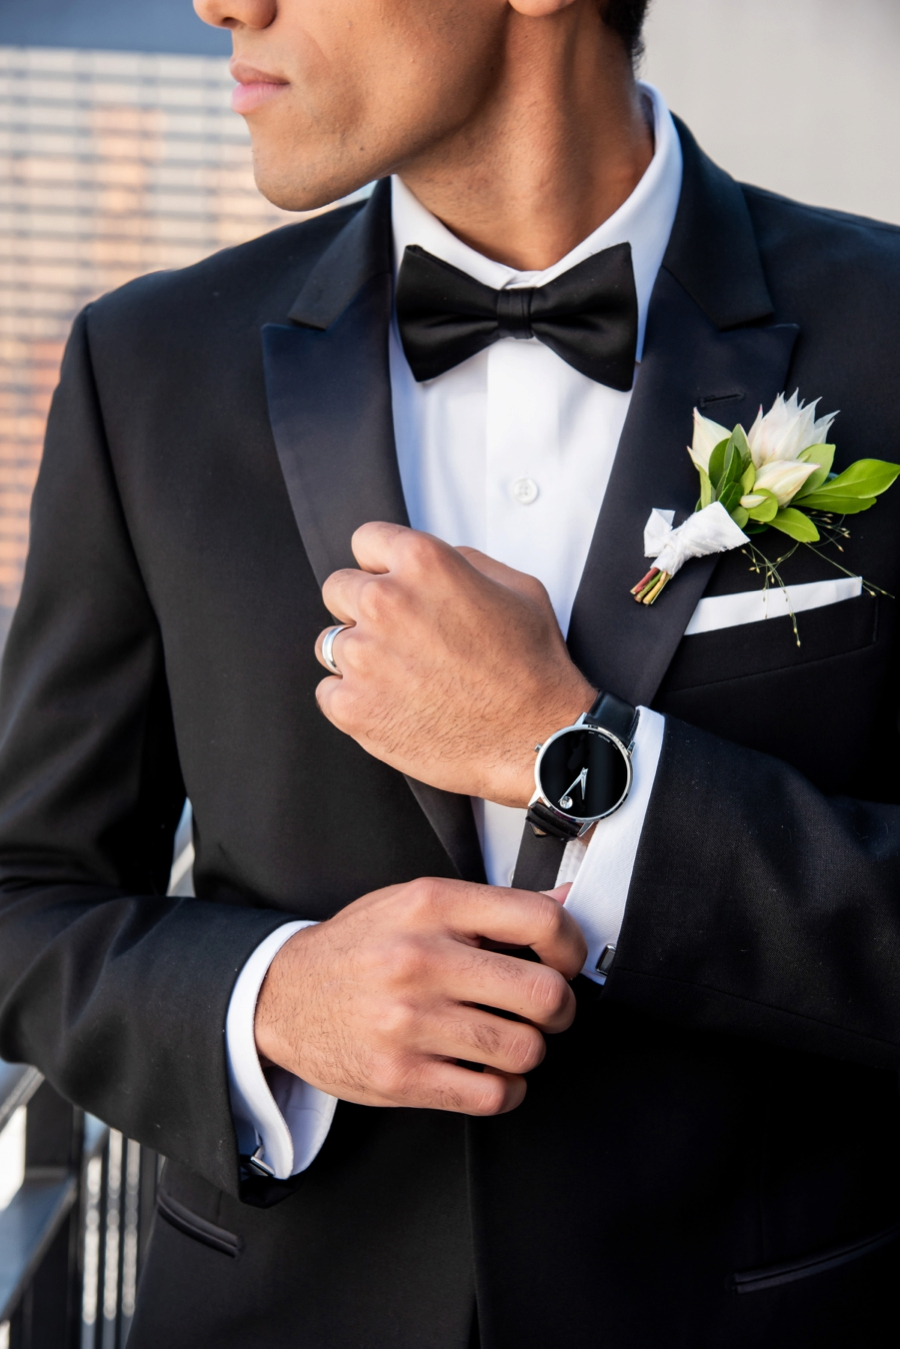 Modern Rooftop Elopement Inspiration With Chic Wedding Day Gift Ideas via TheELD.com modern rooftop elopement inspiration with chic wedding day gift ideas - A Modern Rooftop Elopement Inspiration 0031 - Modern Rooftop Elopement Inspiration With Chic Wedding Day Gift Ideas